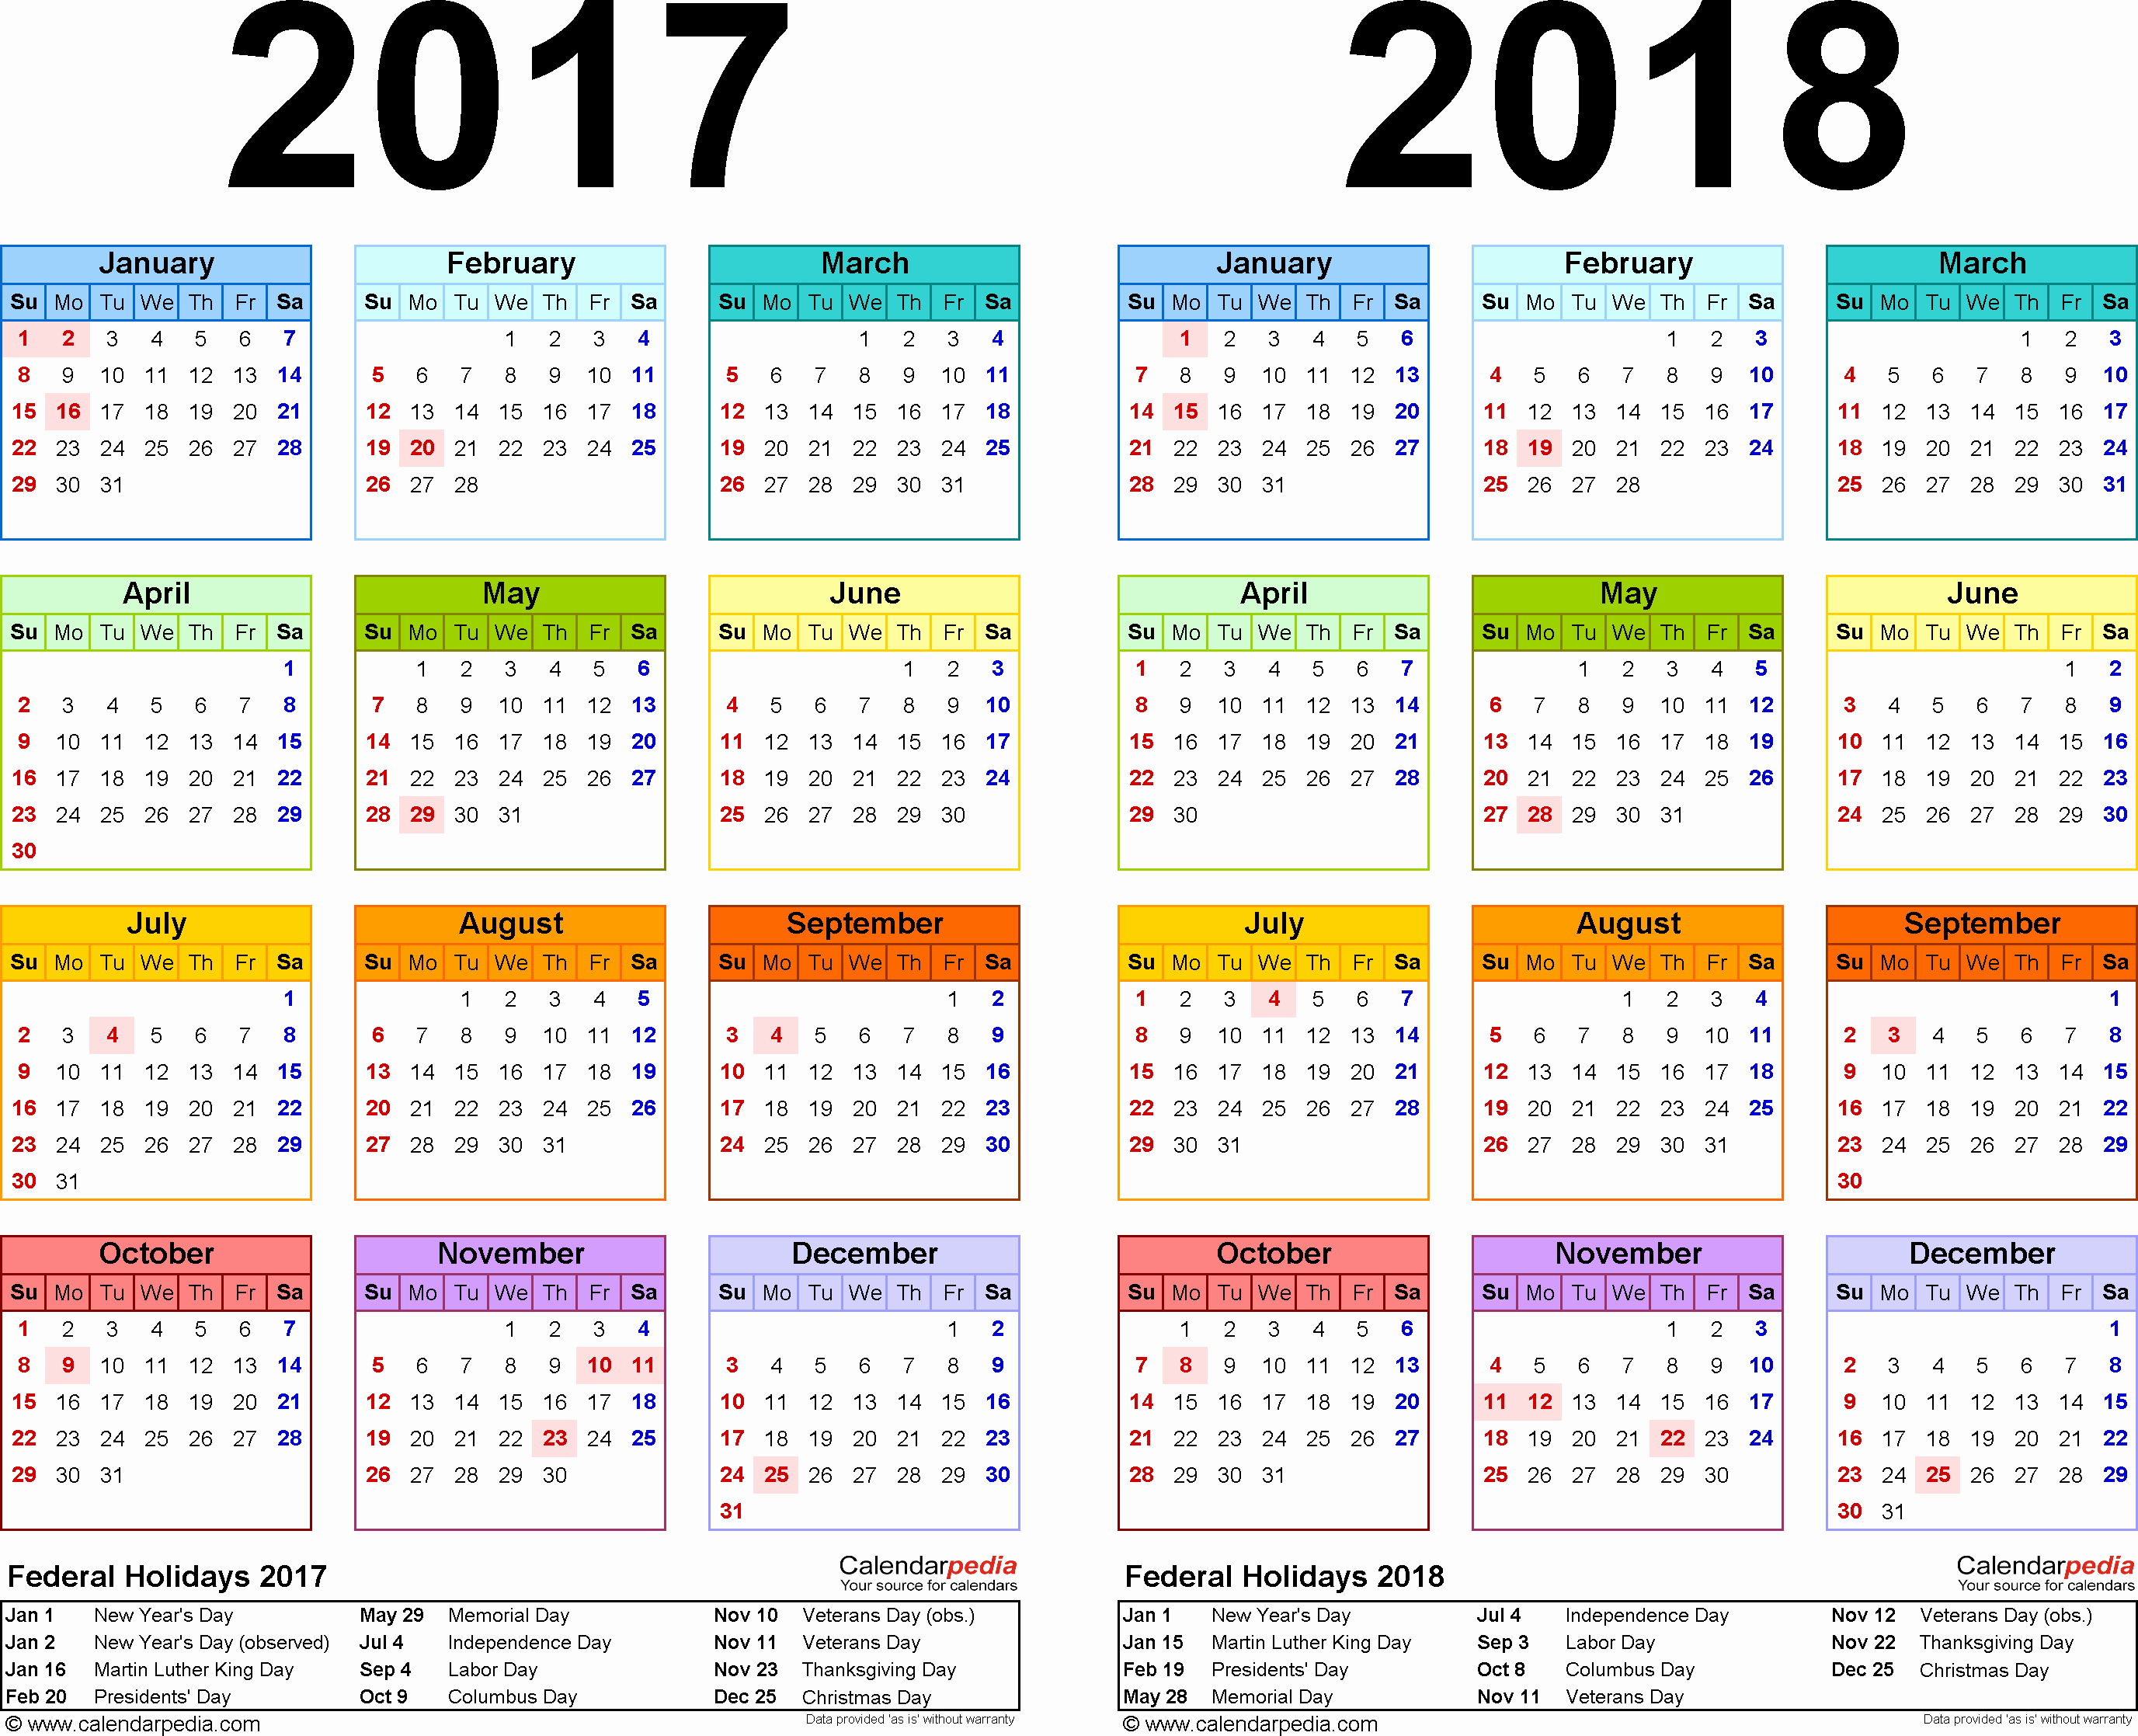 2017-2018 Blank Calendar Luxury 2017 2018 Calendar Free Printable Two Year Pdf Calendars